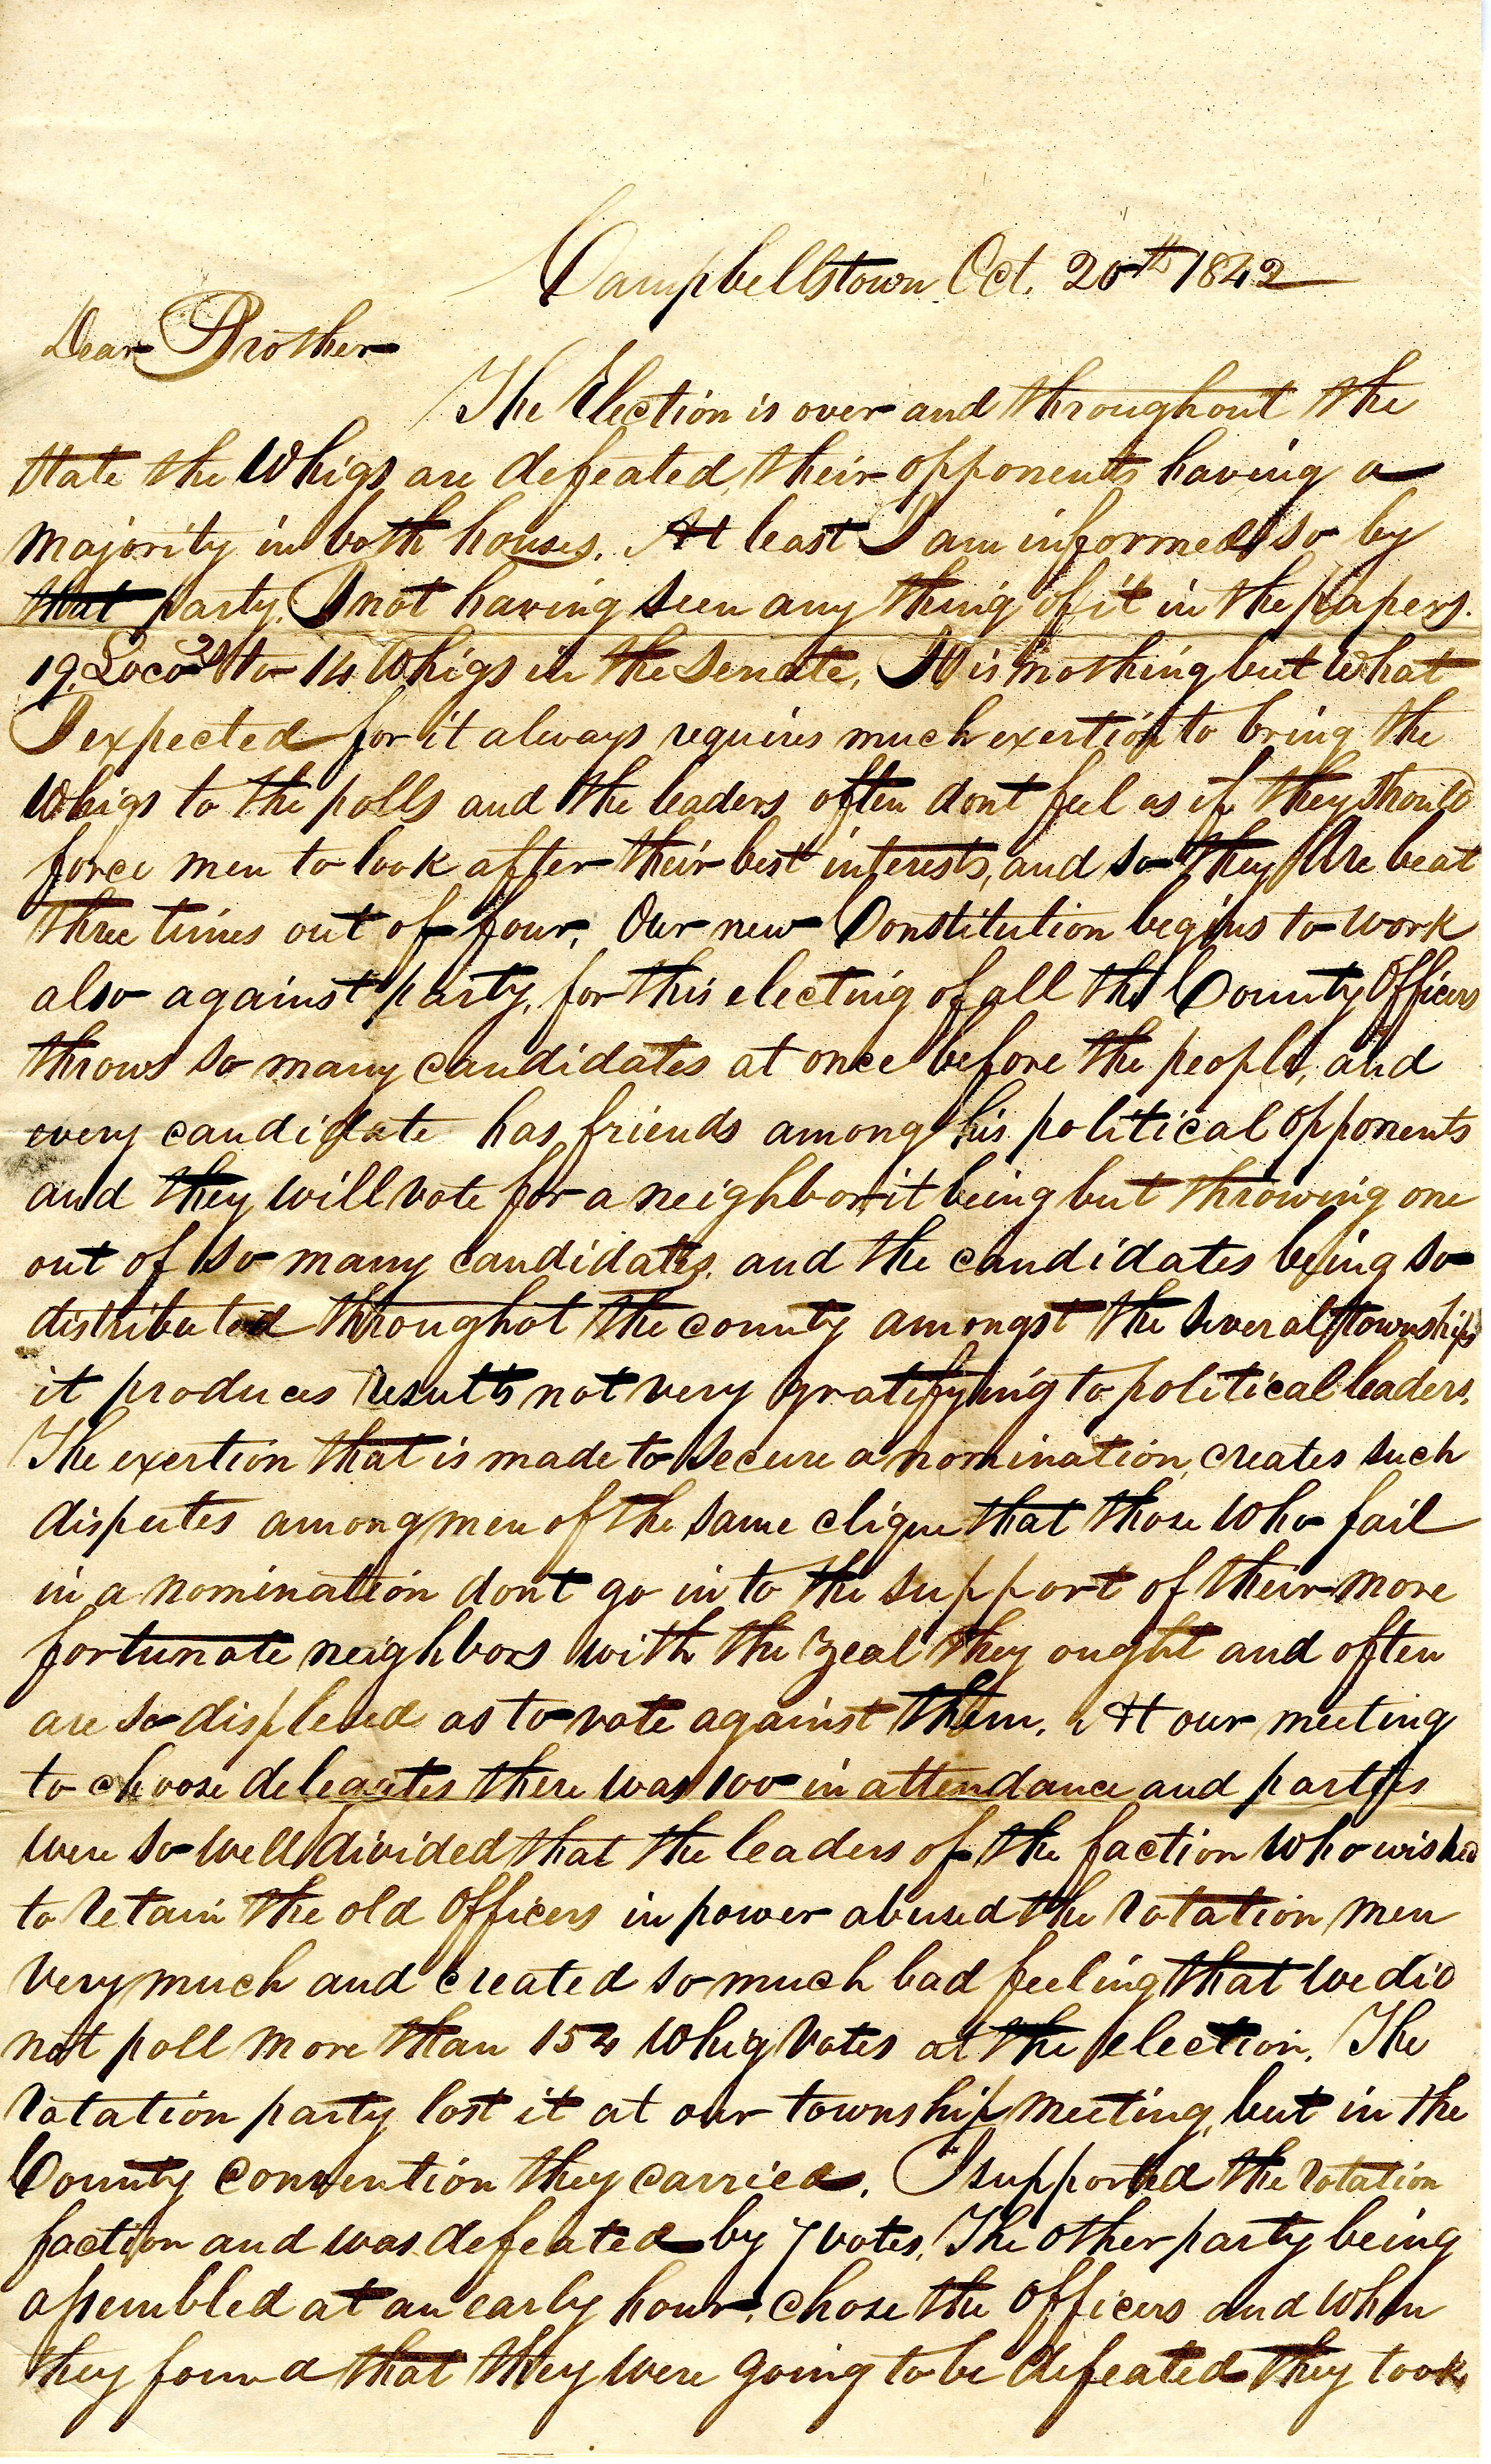 Letter From William Geddes to John Geddes, October 20, 1842 image